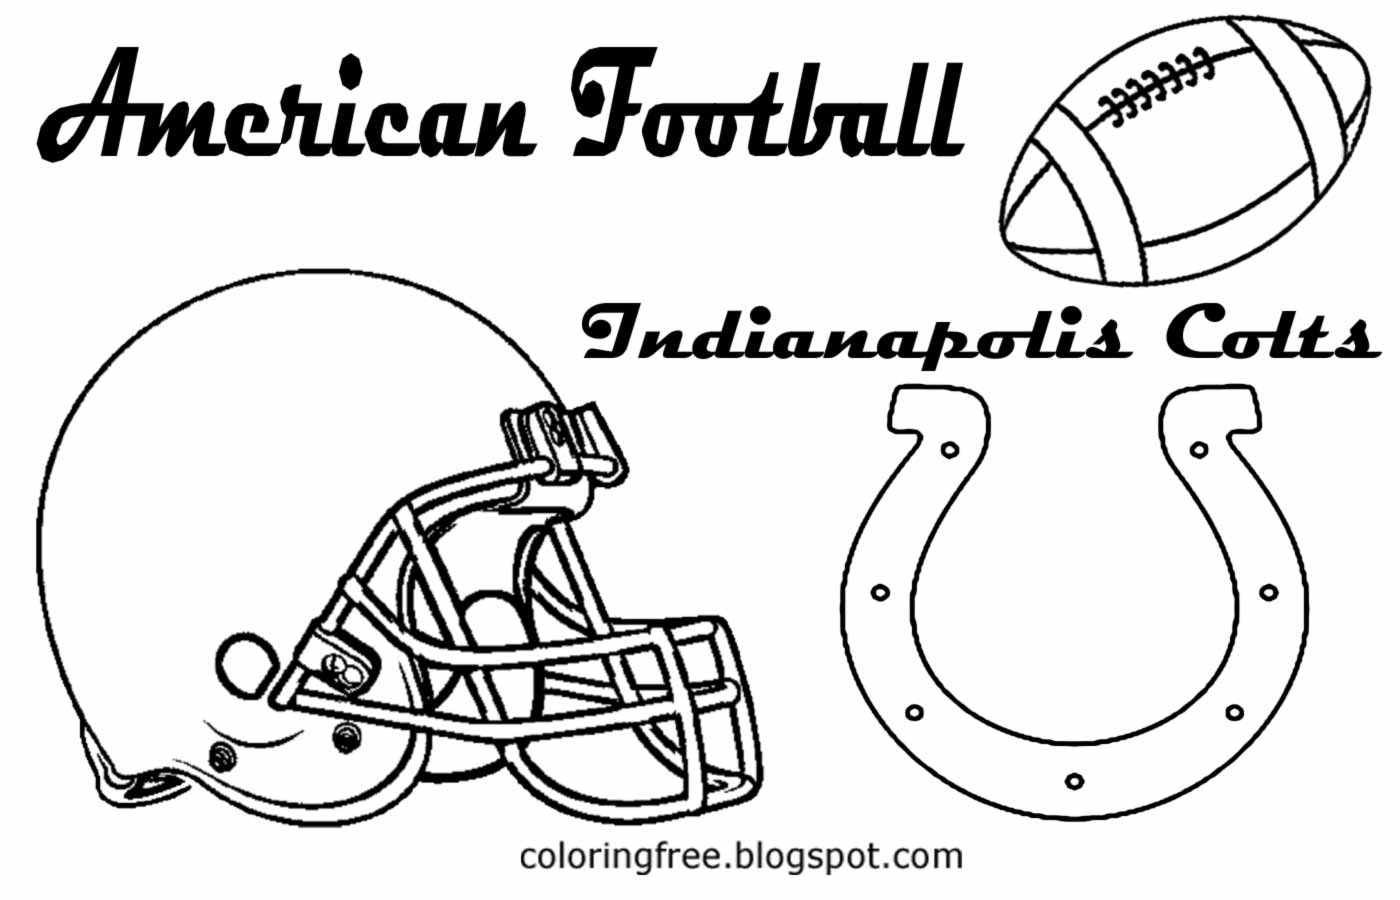 Coloring pages for indianapolis colts